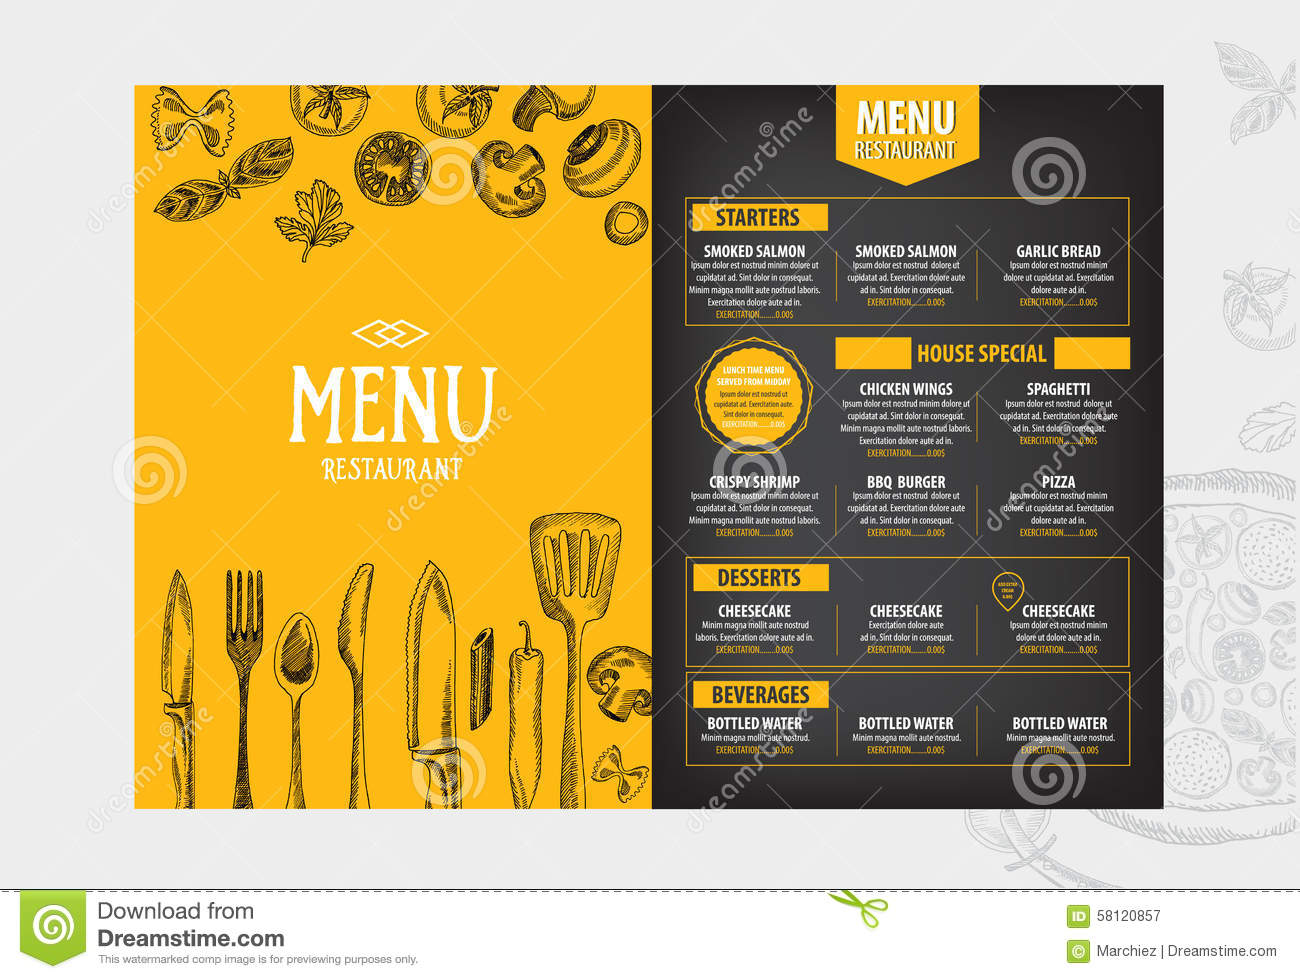 Doc770477 Free Cafe Menu Templates for Word Free Restaurant – Free Cafe Menu Templates for Word